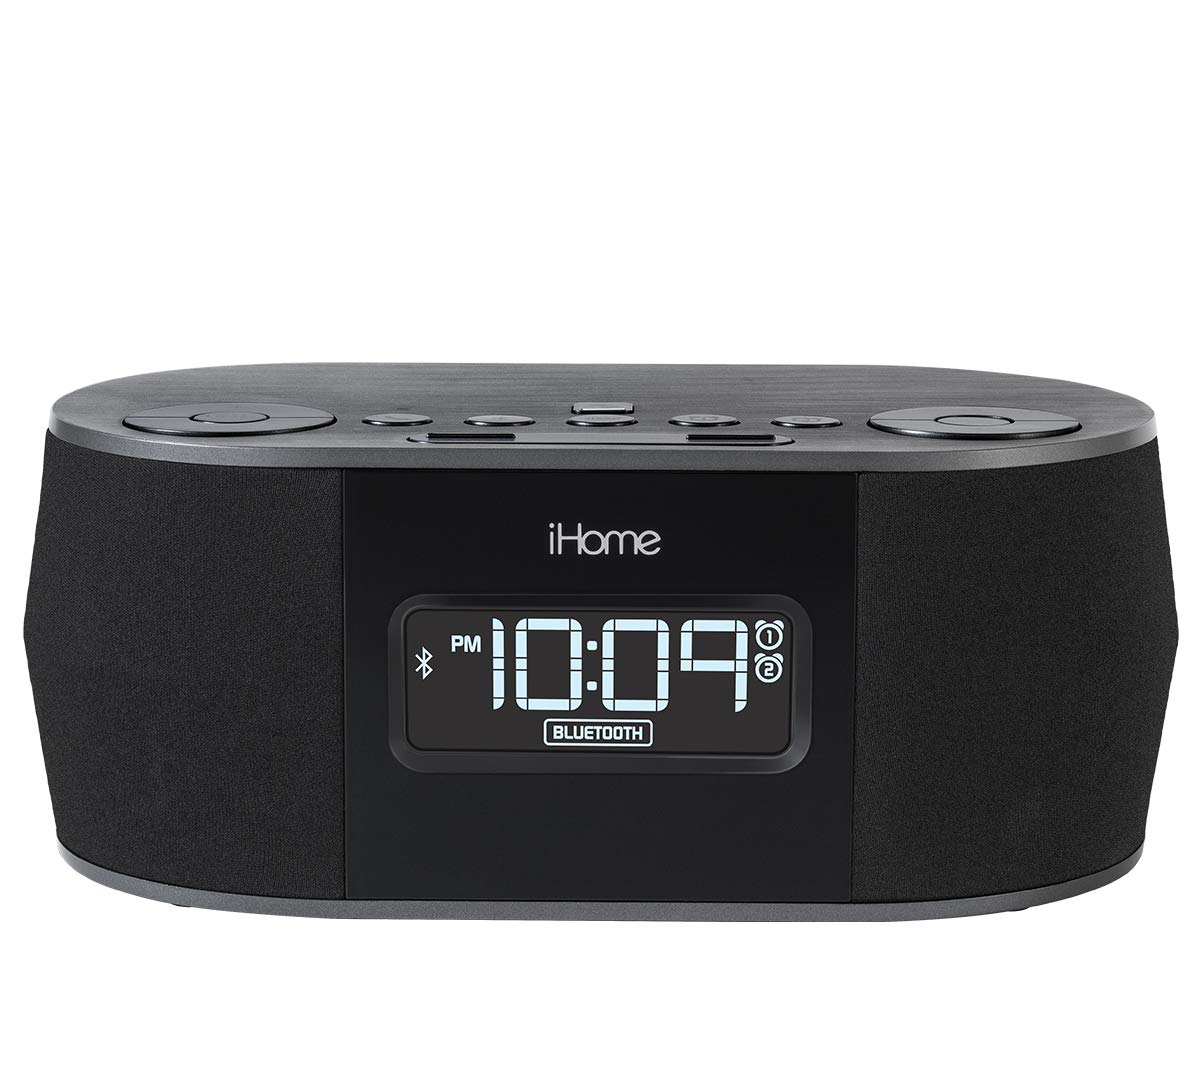 iHome Wireless Bluetooth Stereo, Dual FM Alarm Clock Radio, USB Charging, Alarm Clock For Bedrooms, Alarm Clock, Voice Echo Cancellation, Twin Speakers, Hi-Quality Sound, Battery Backup, Display, Blac by iHome